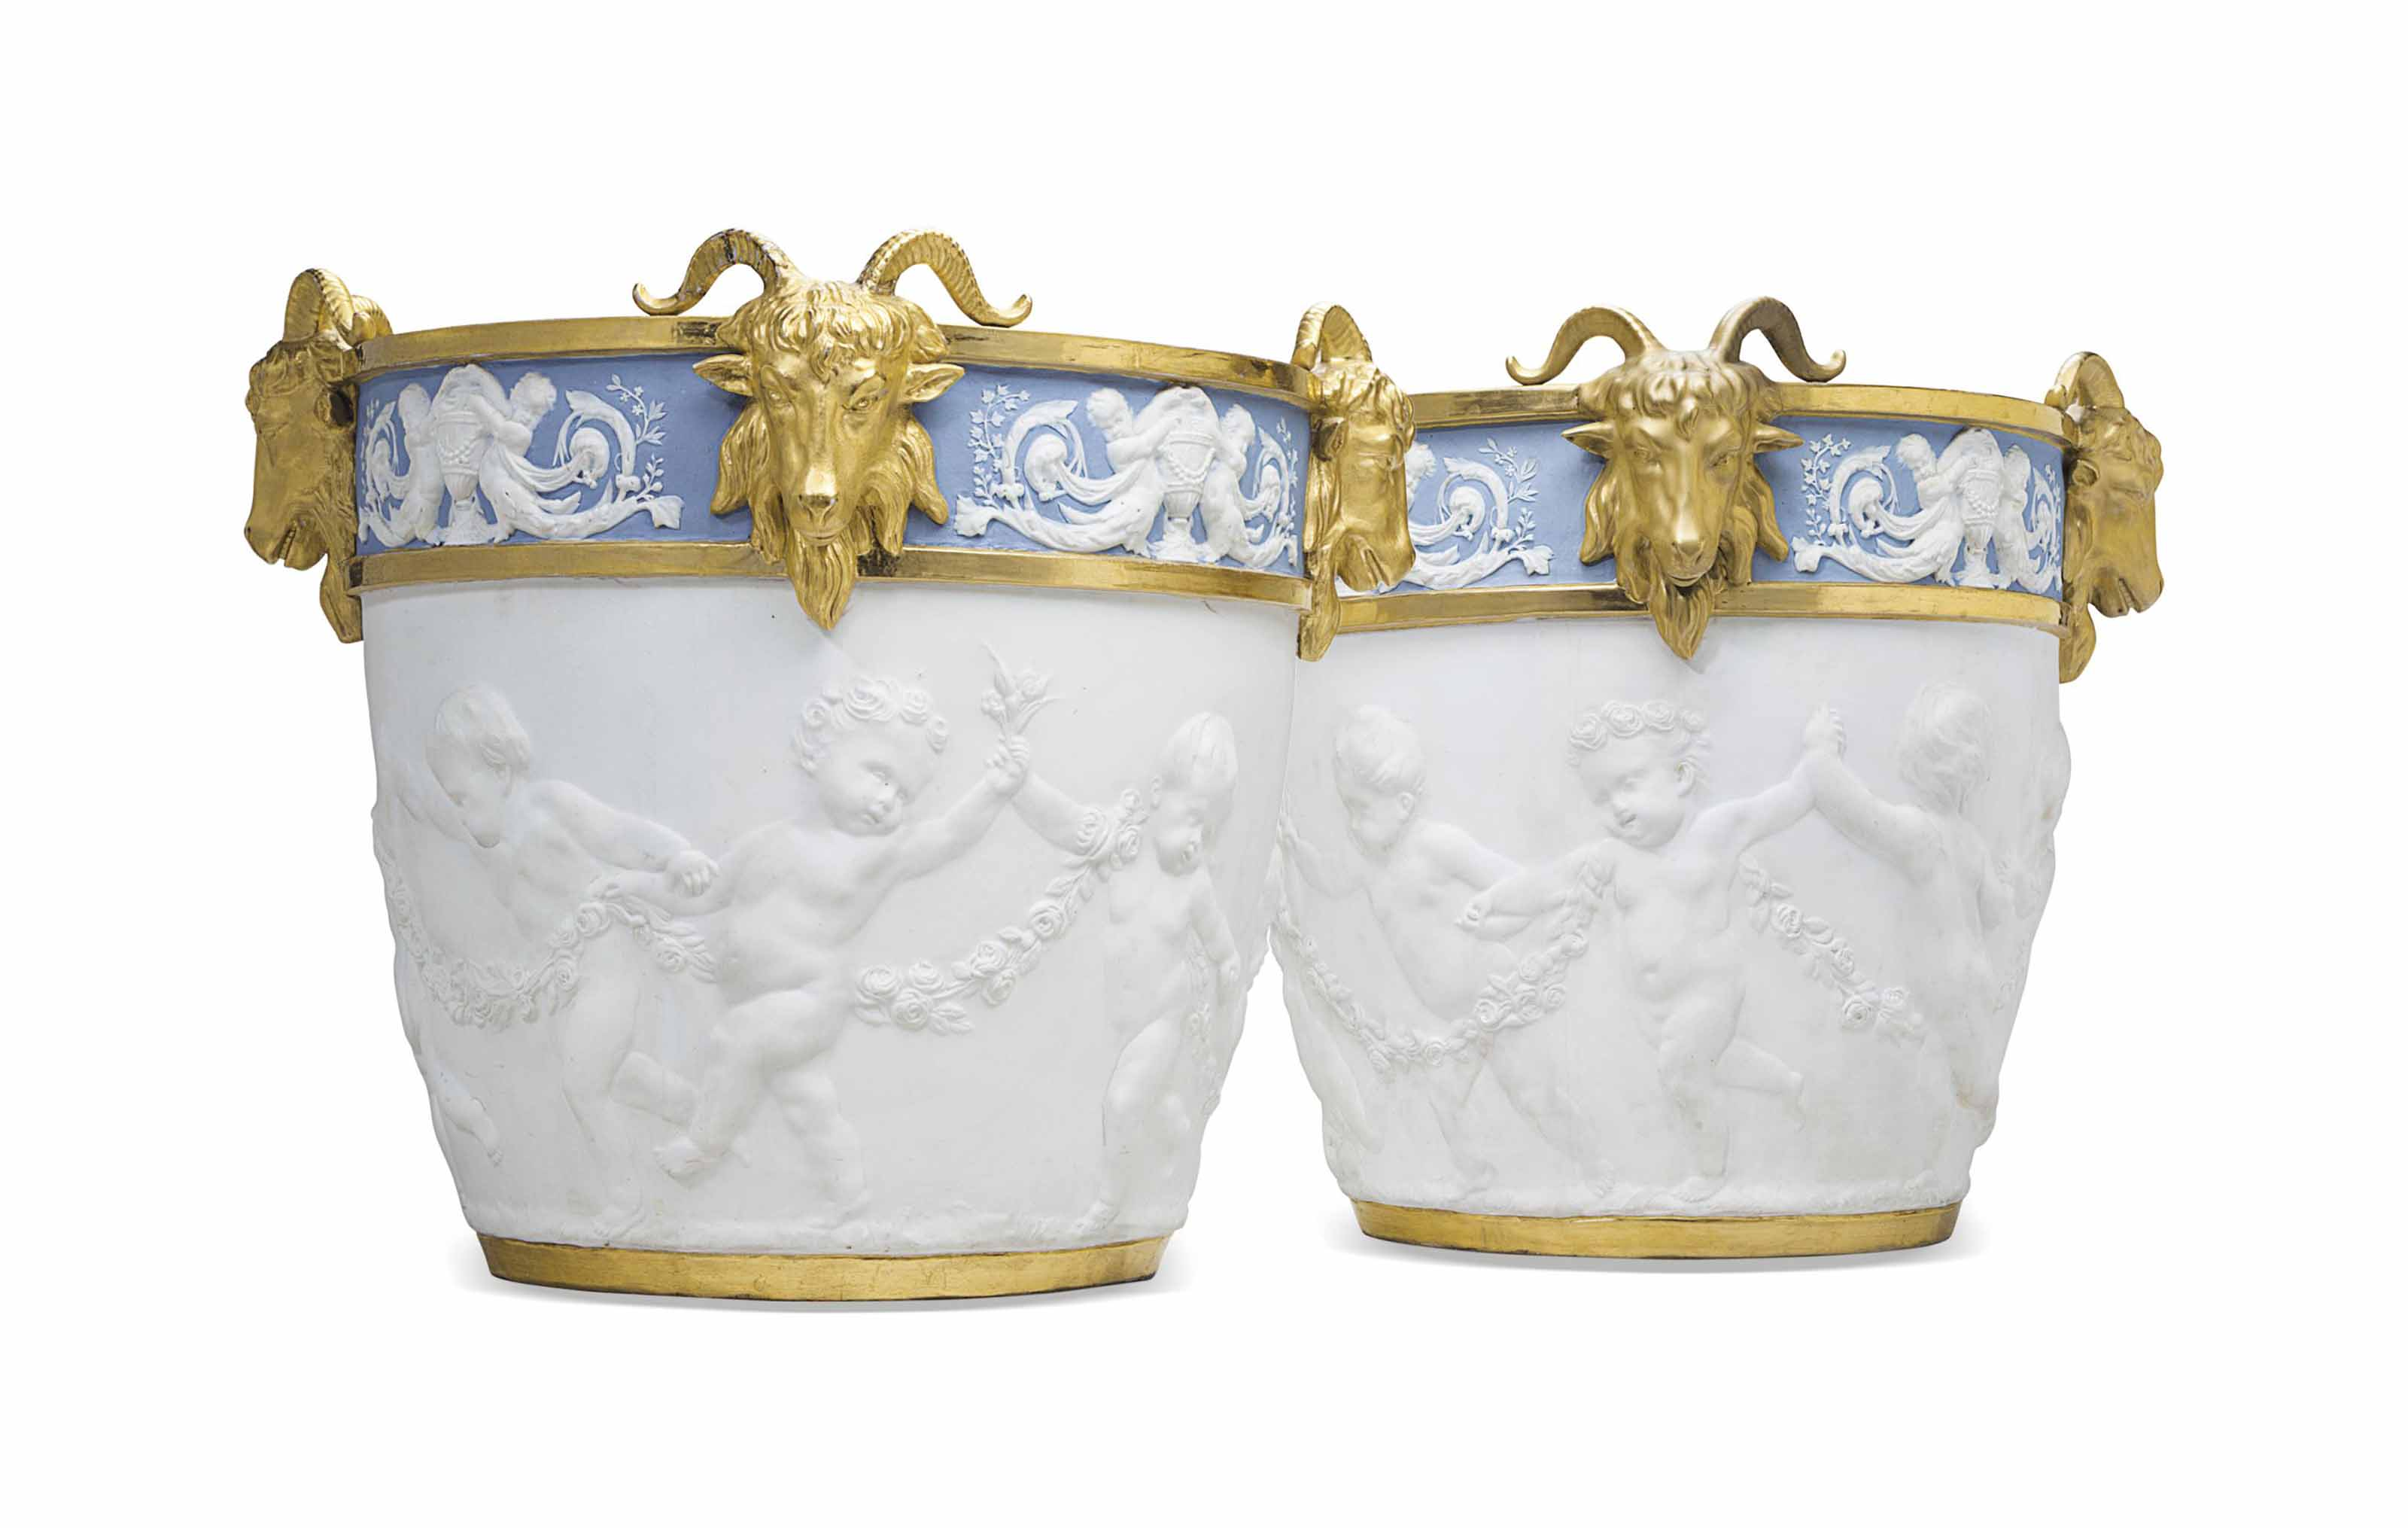 TWO SAMSON SEVRES STYLE PARCEL